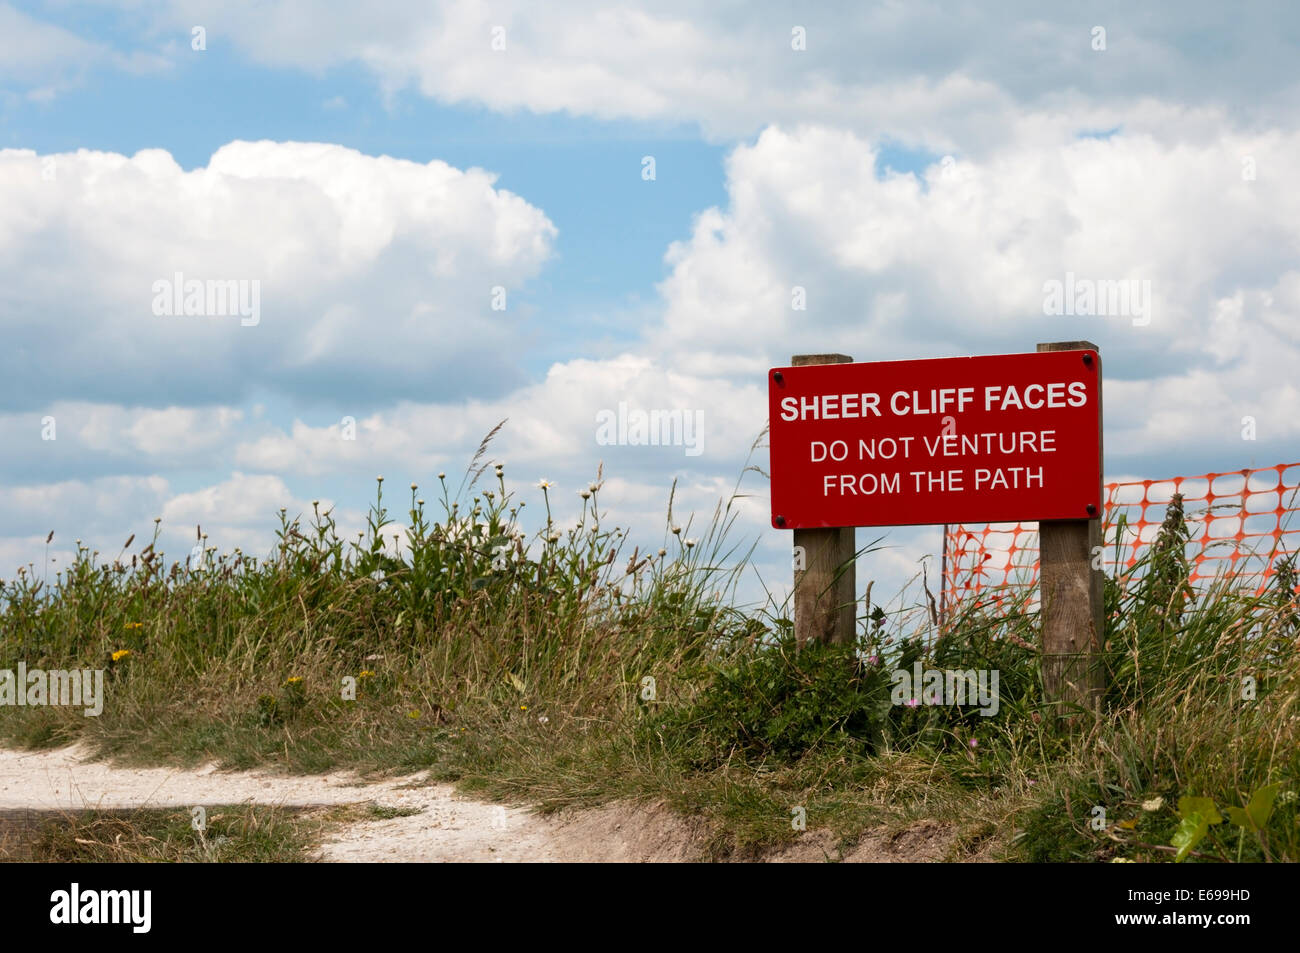 Sheer Cliff Faces warning sign. - Stock Image